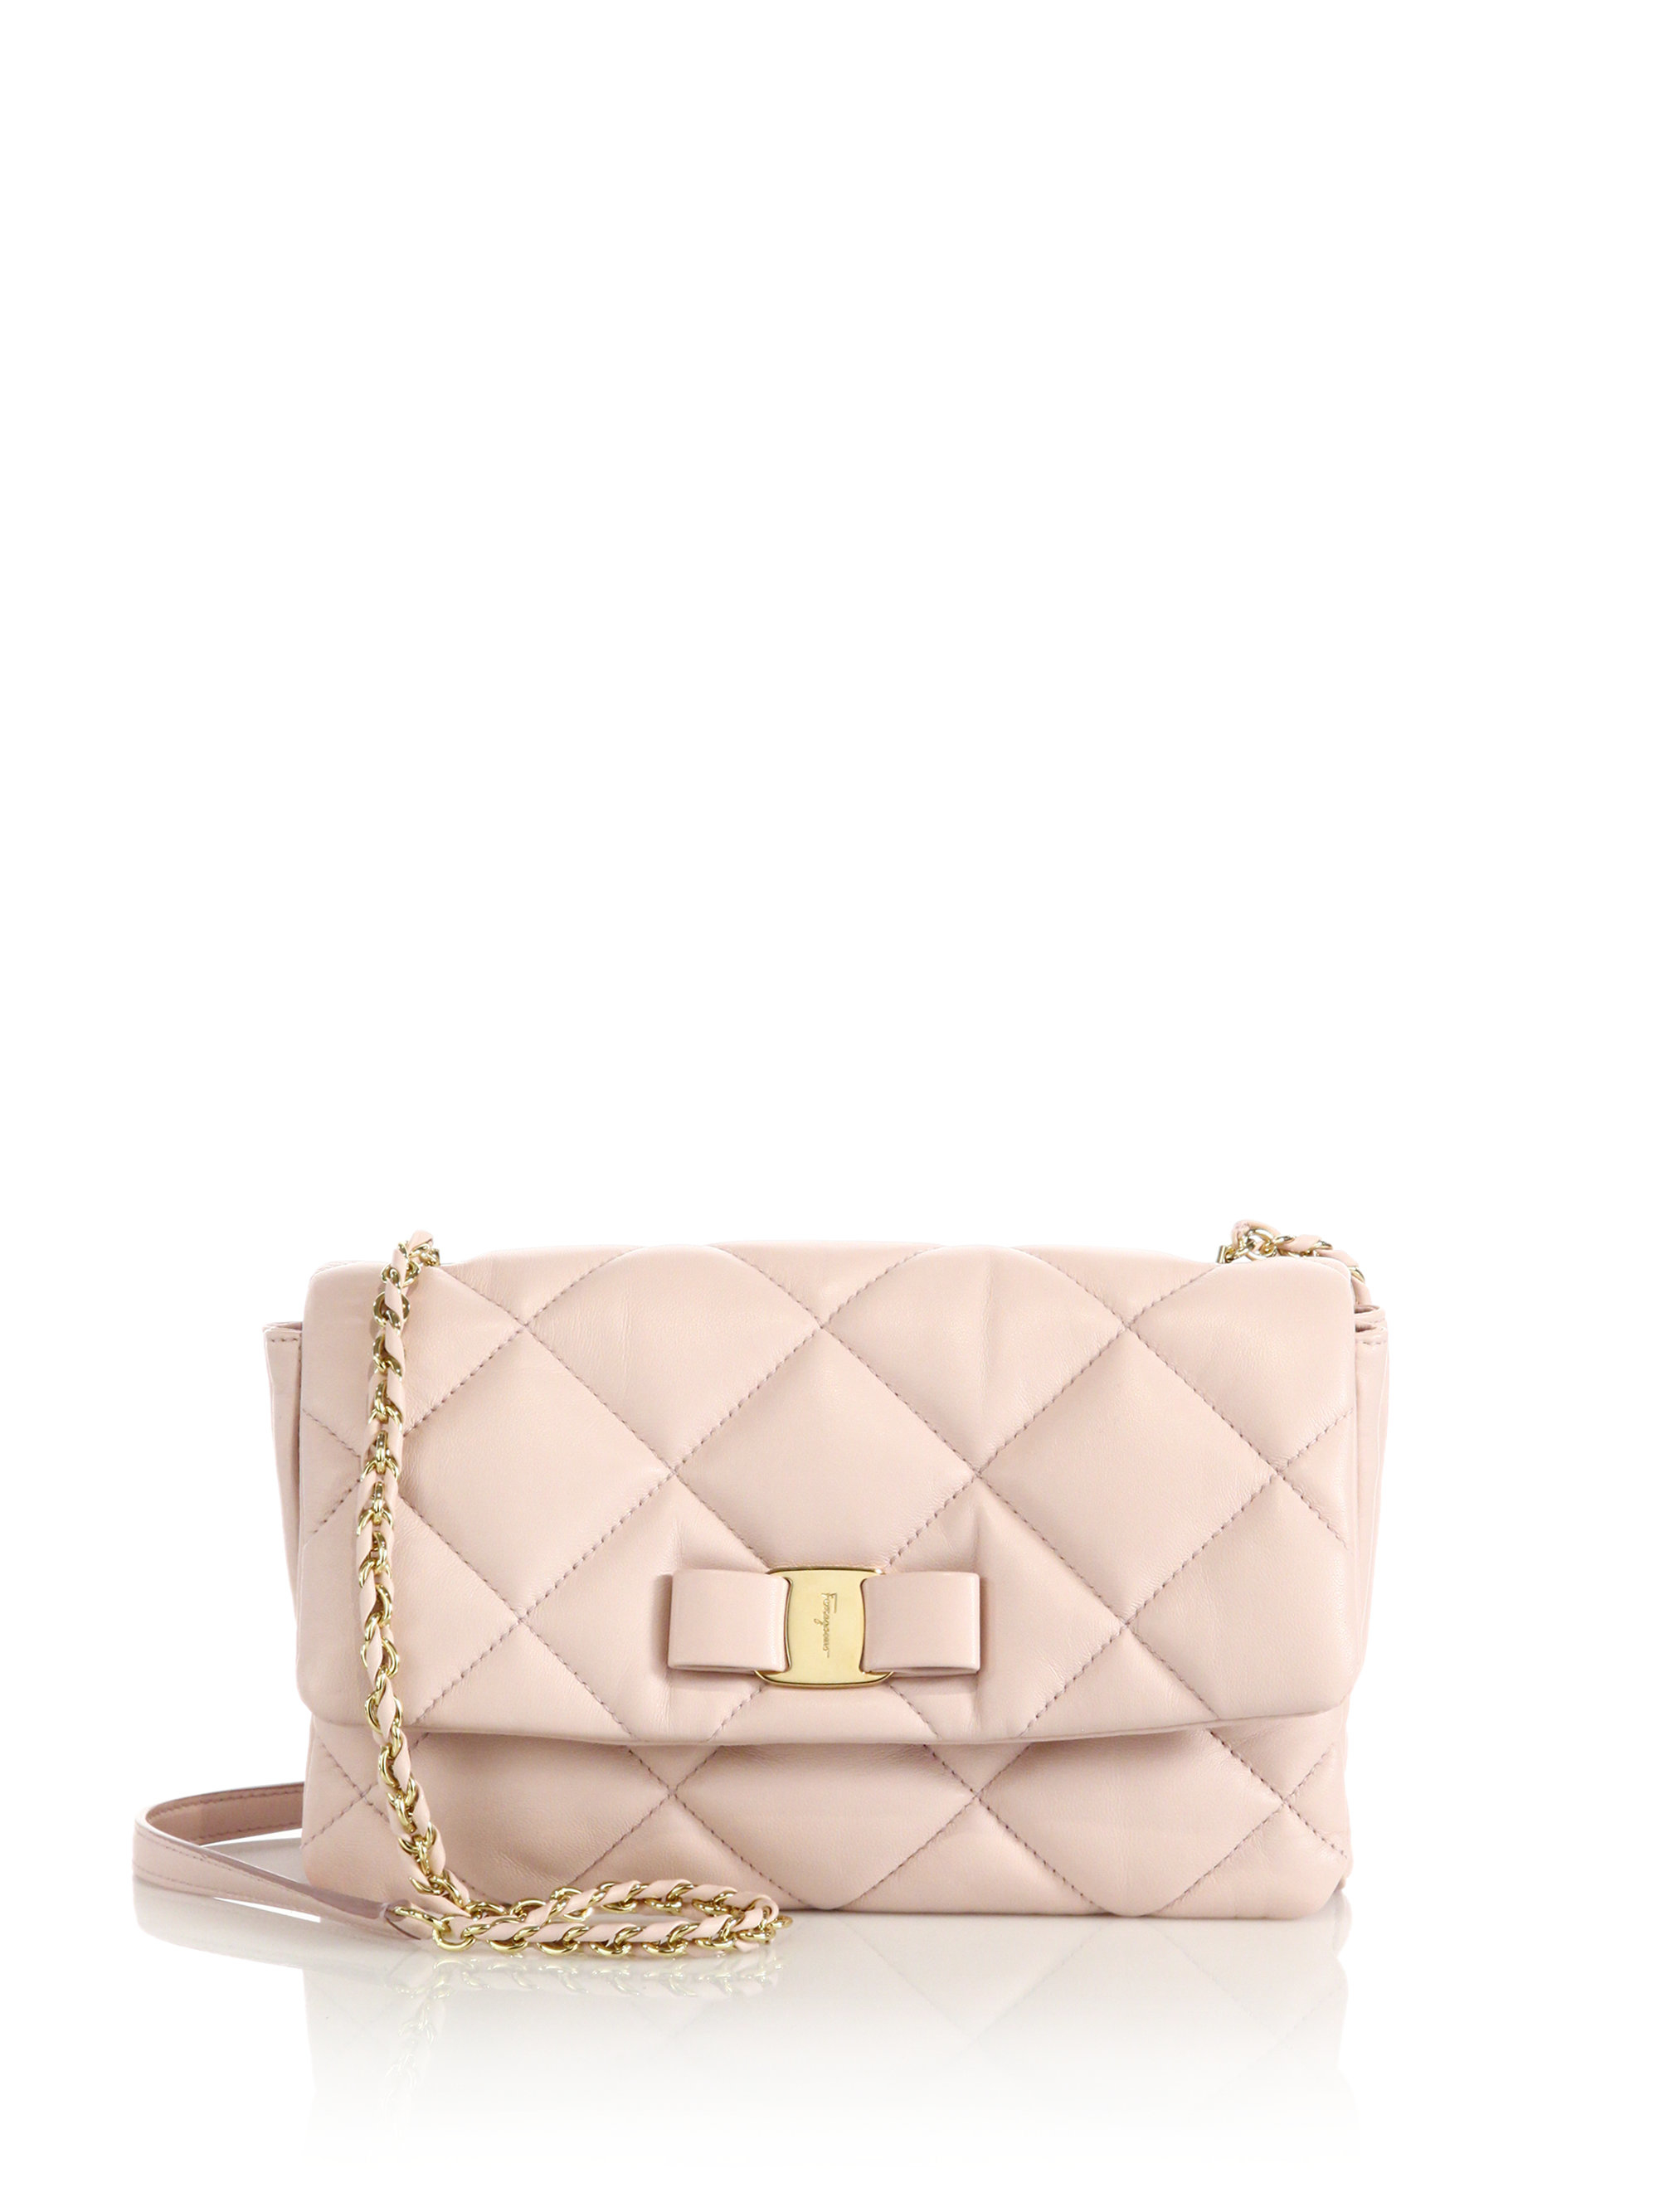 6594f2d1d78c Lyst - Ferragamo Gelly Quilted Nappa Leather Shoulder Bag in Pink